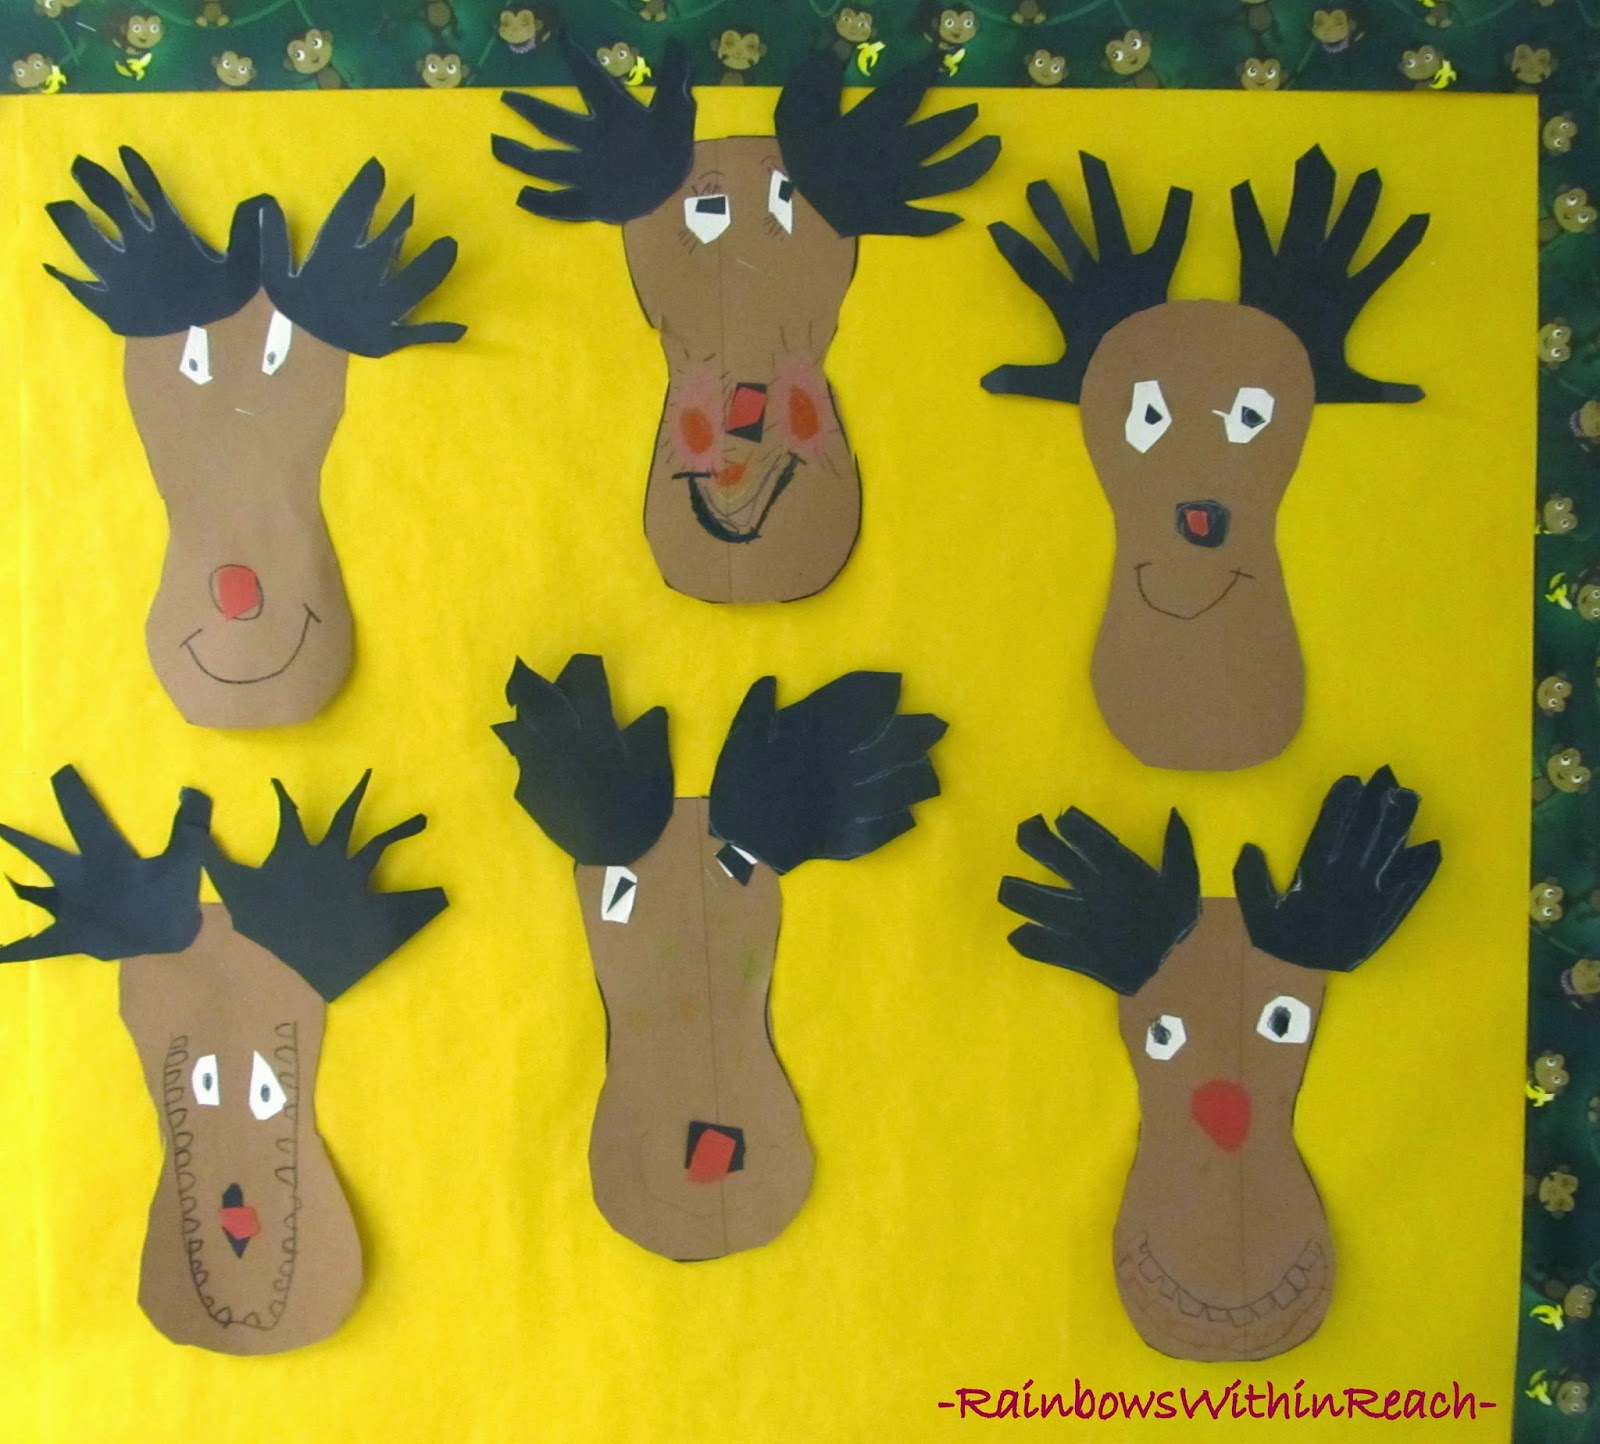 Christmas Bulletin Board: Reindeer with Antlers at RainbowsWithinReach